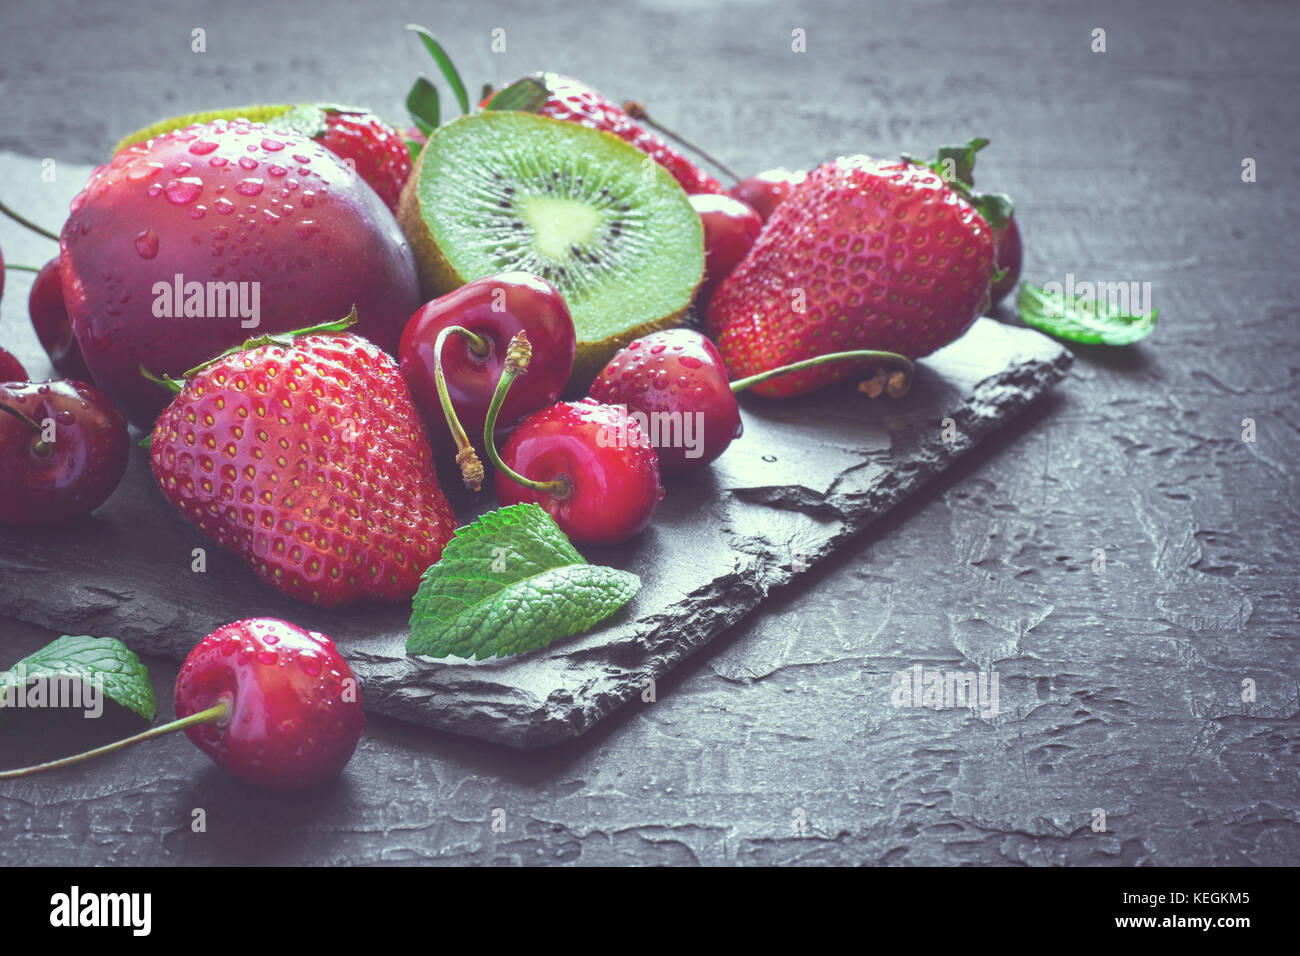 Mix of Juicy summer fruits and berries. Strawberry, cherry, kiwi and peaches on black slate plate. Toned - Stock Image